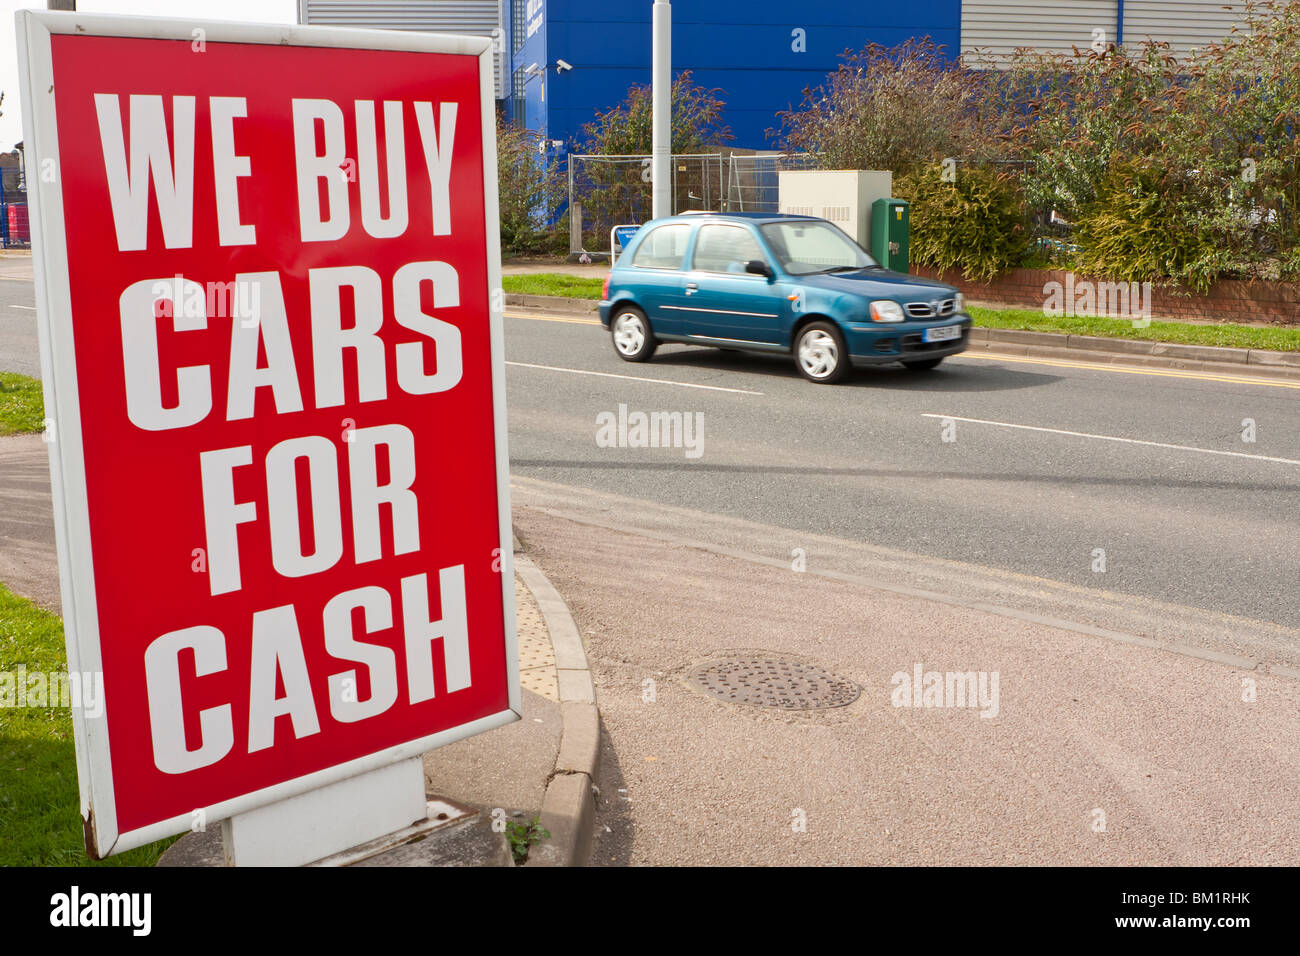 We buy cars for cash sign Stock Photo: 29543967 - Alamy